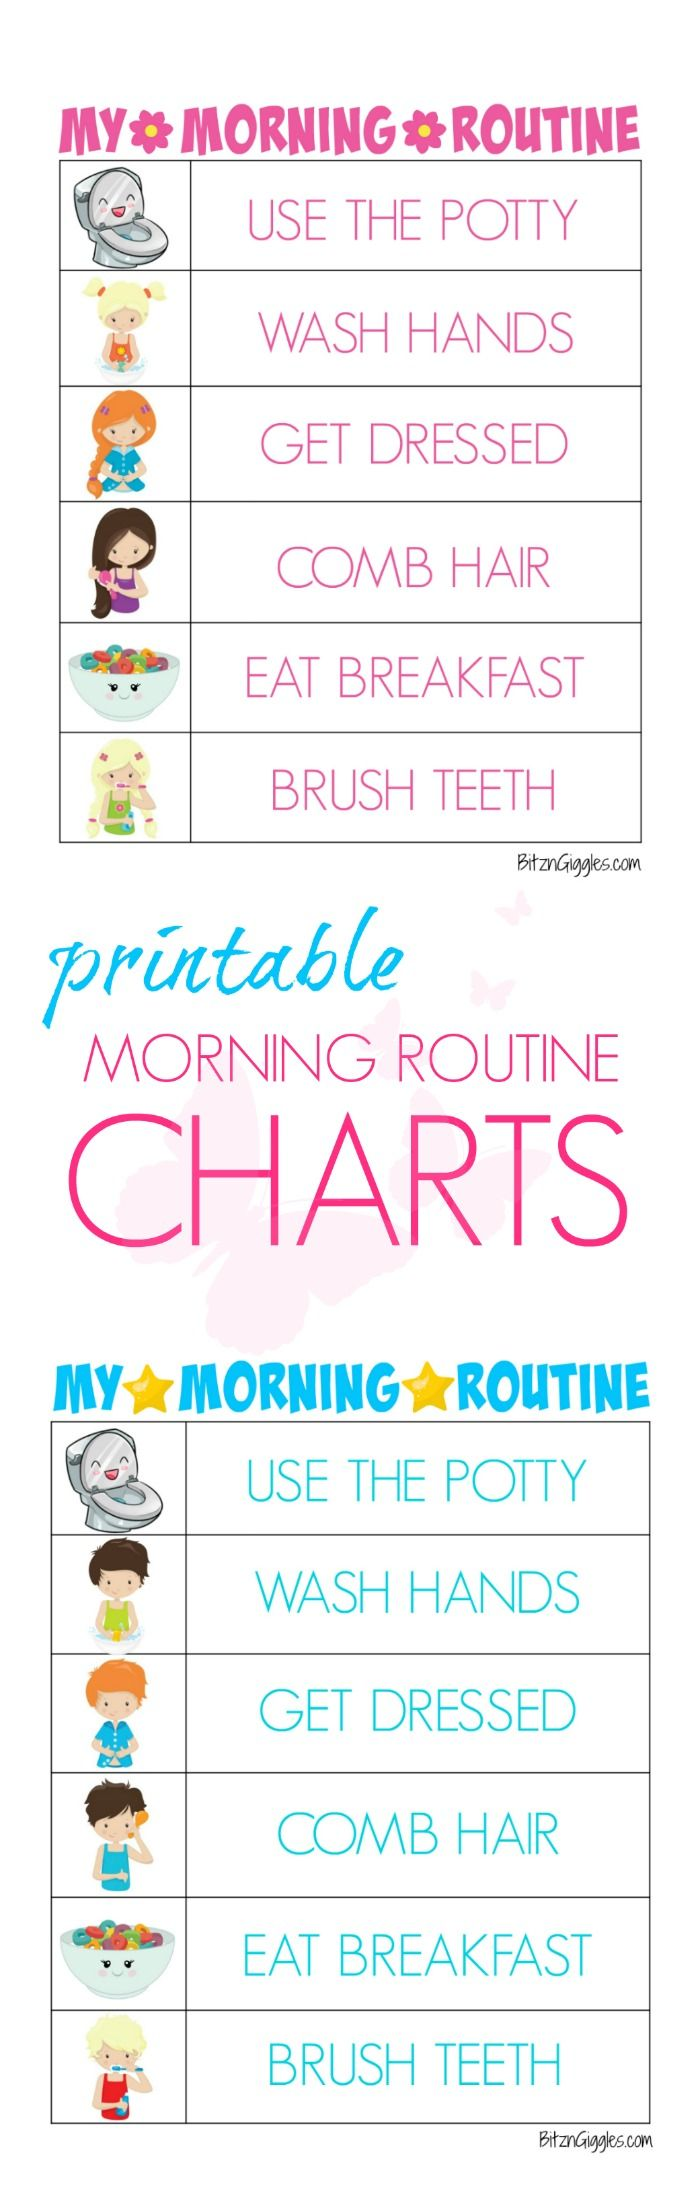 Witty image inside morning routine checklist printable